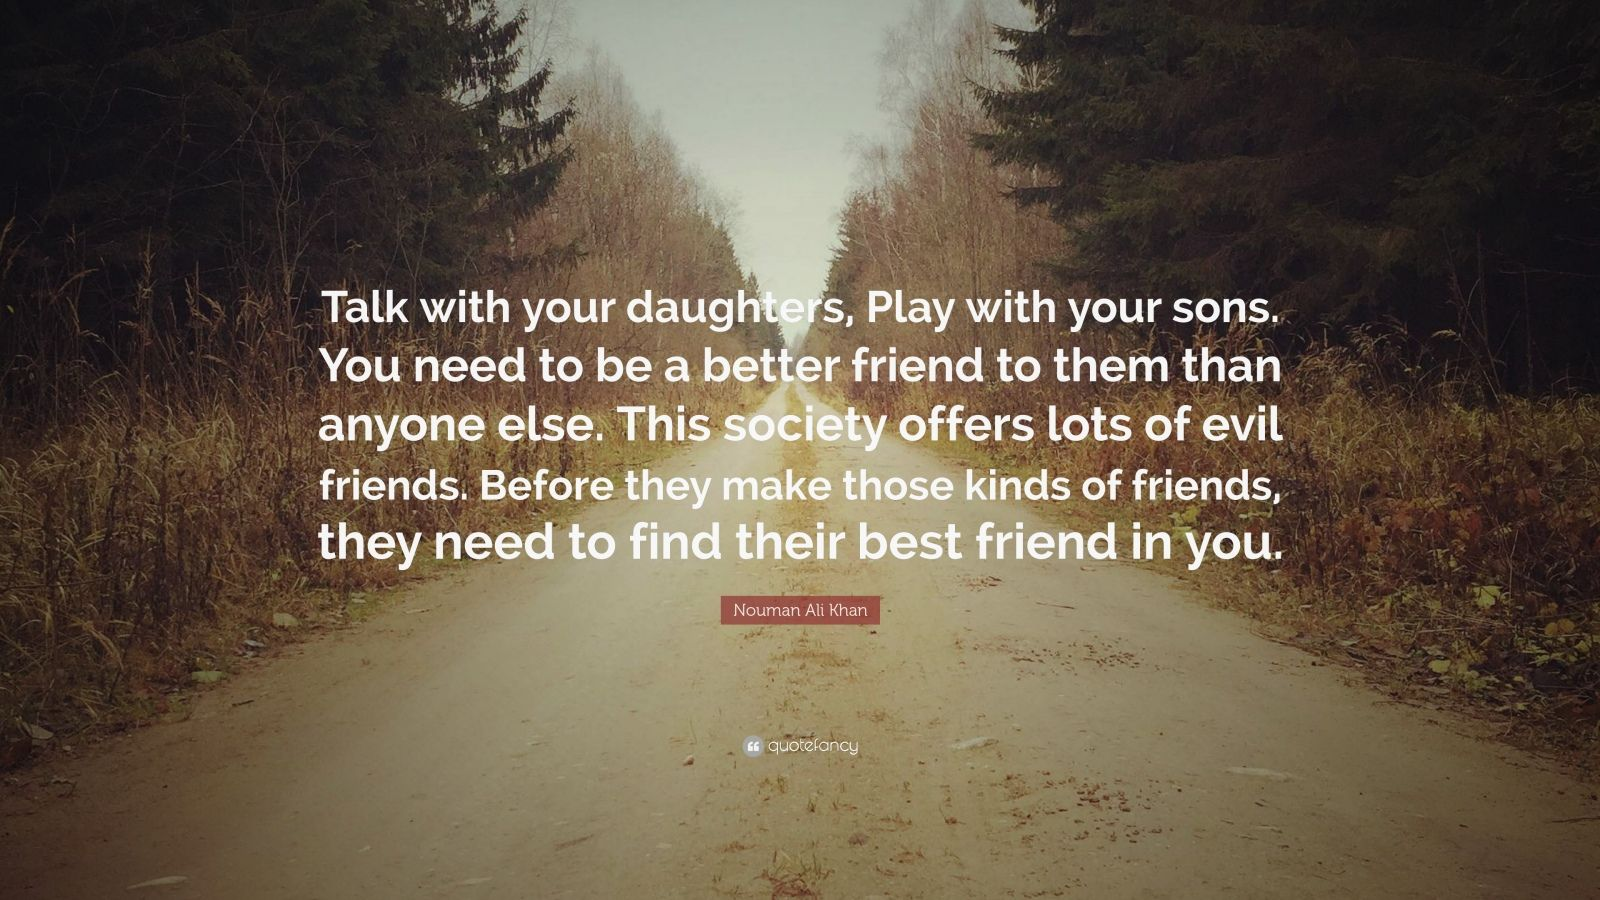 """Nouman Ali Khan Quote: """"Talk with your daughters, Play with your sons. You need to be a better friend to them than anyone else. This society offers lots of evil friends. Before they make those kinds of friends, they need to find their best friend in you."""""""